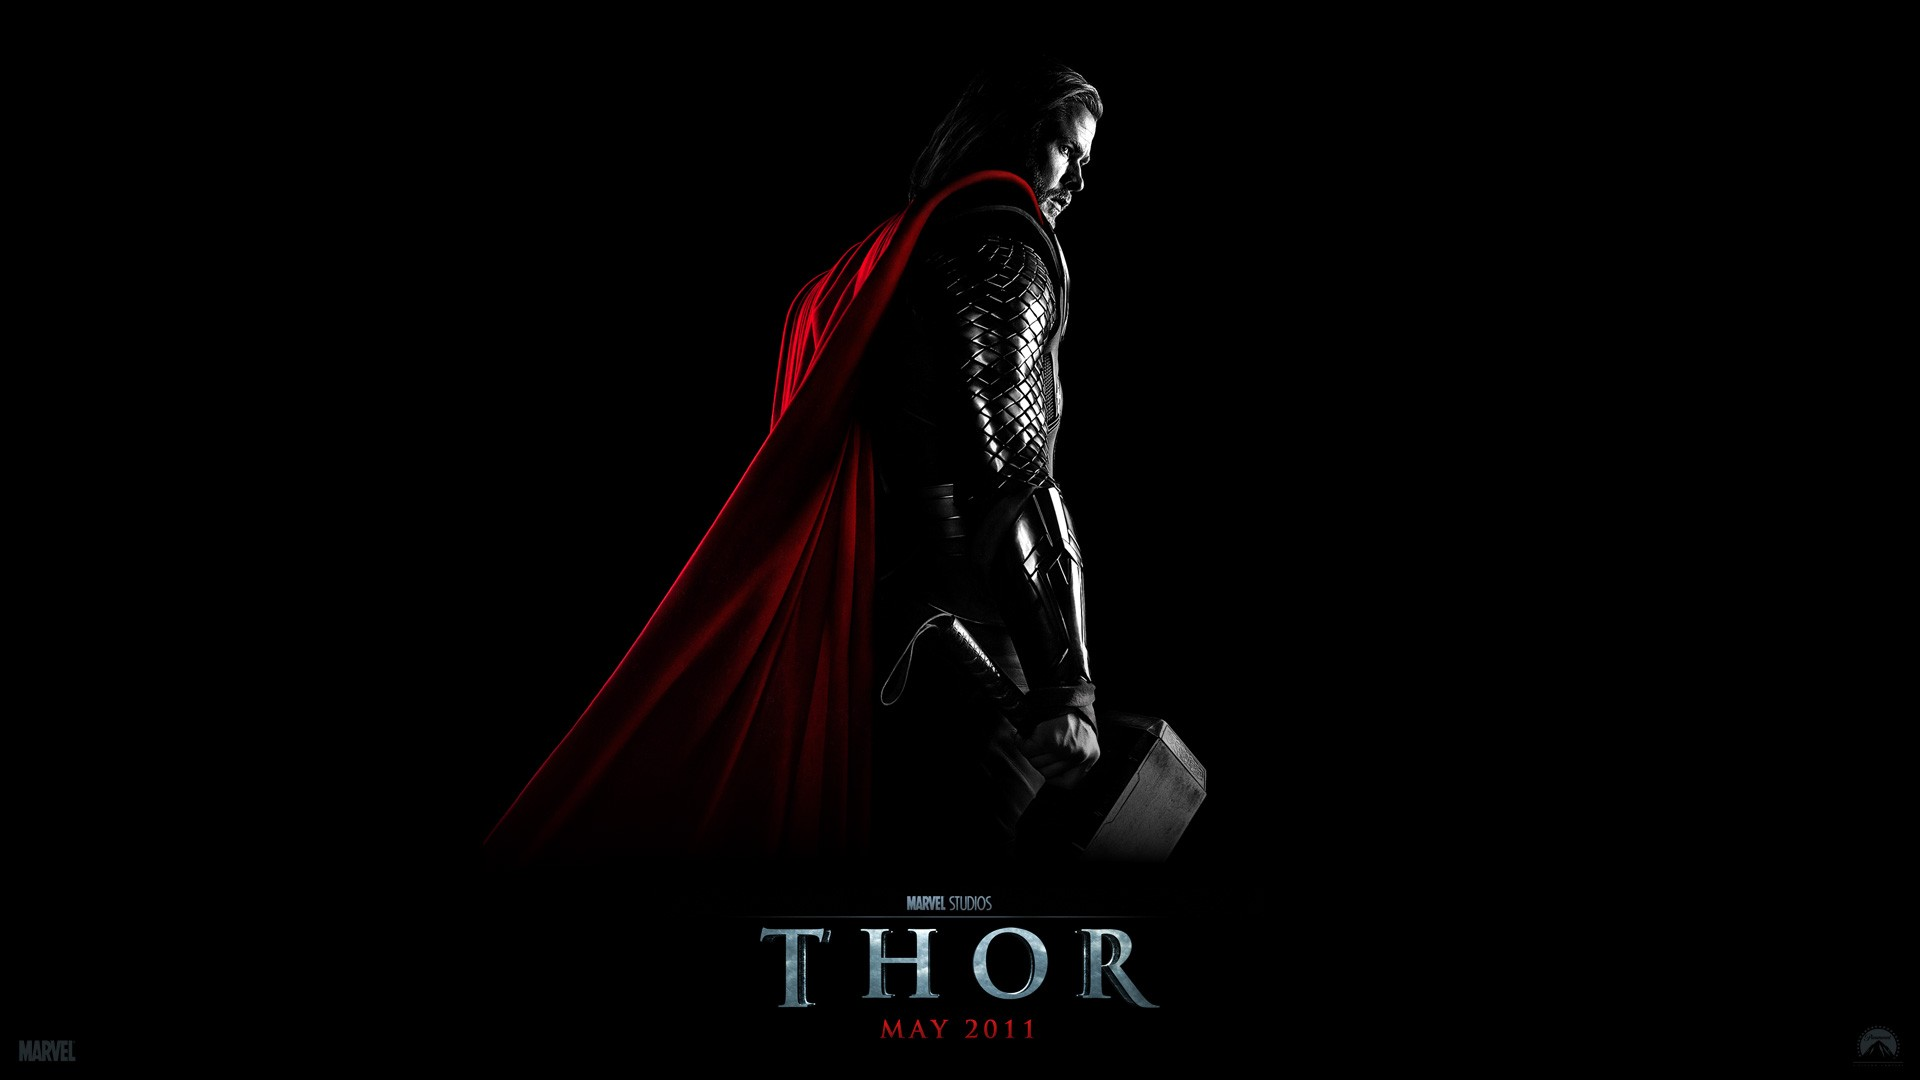 Desktop Wallpapers on the film Thor 2011 issue